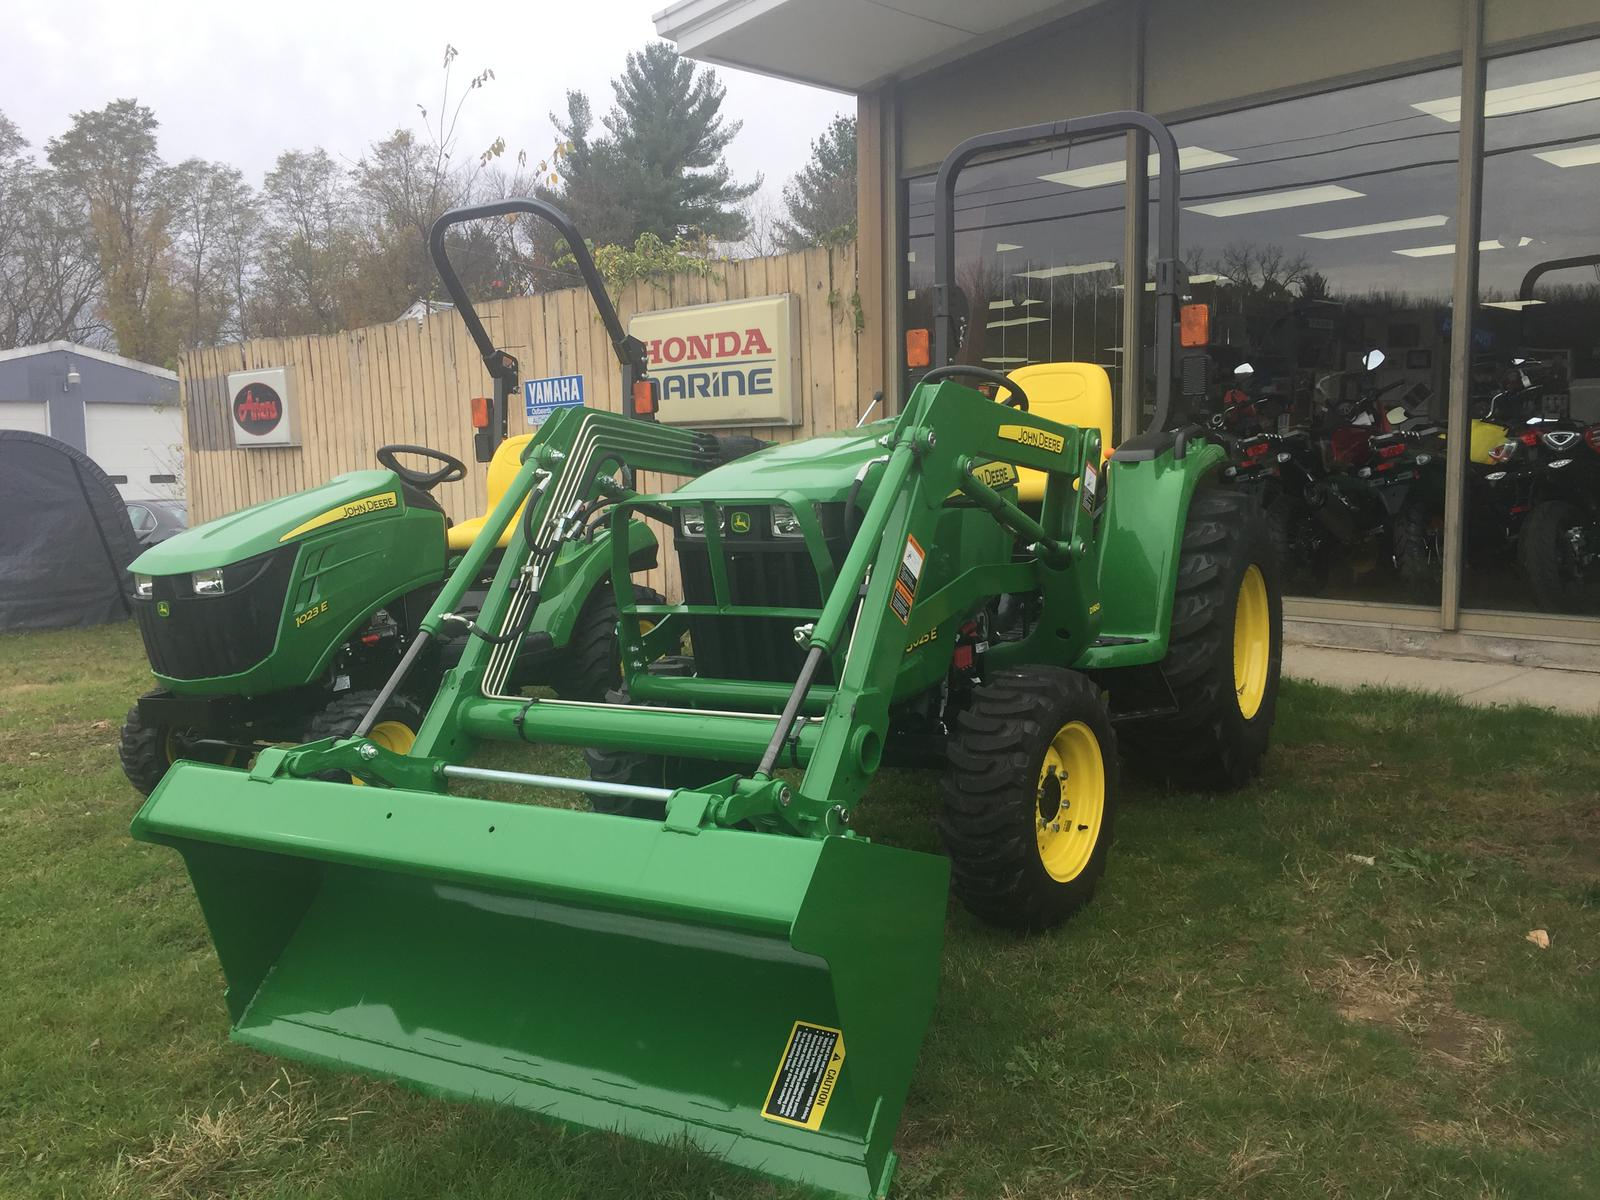 John Deere For Sale >> John Deere John Deere 3025e Tractor With Bucket